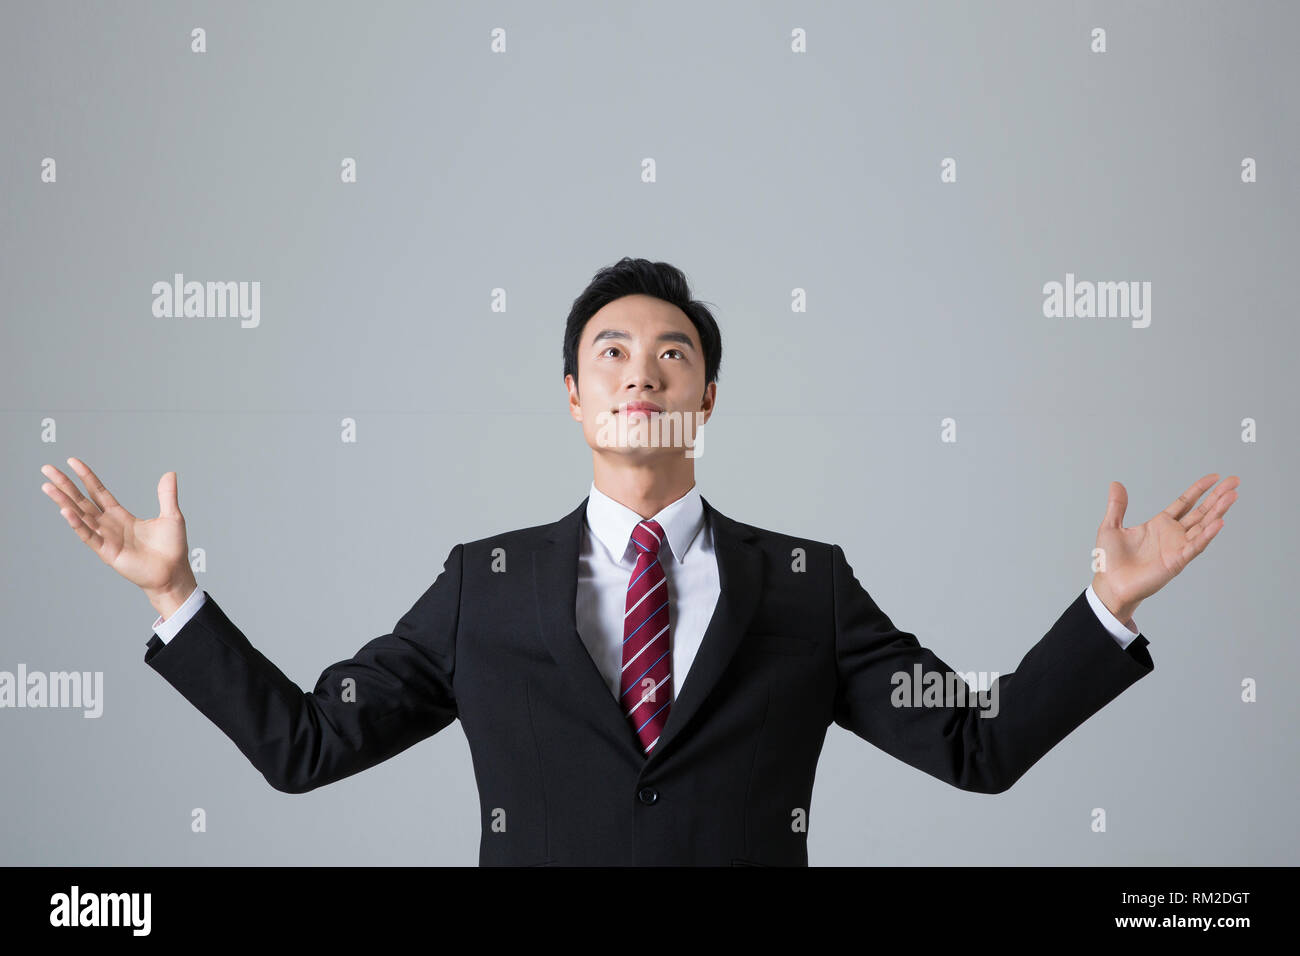 Young businessman concept photo. 029 - Stock Image